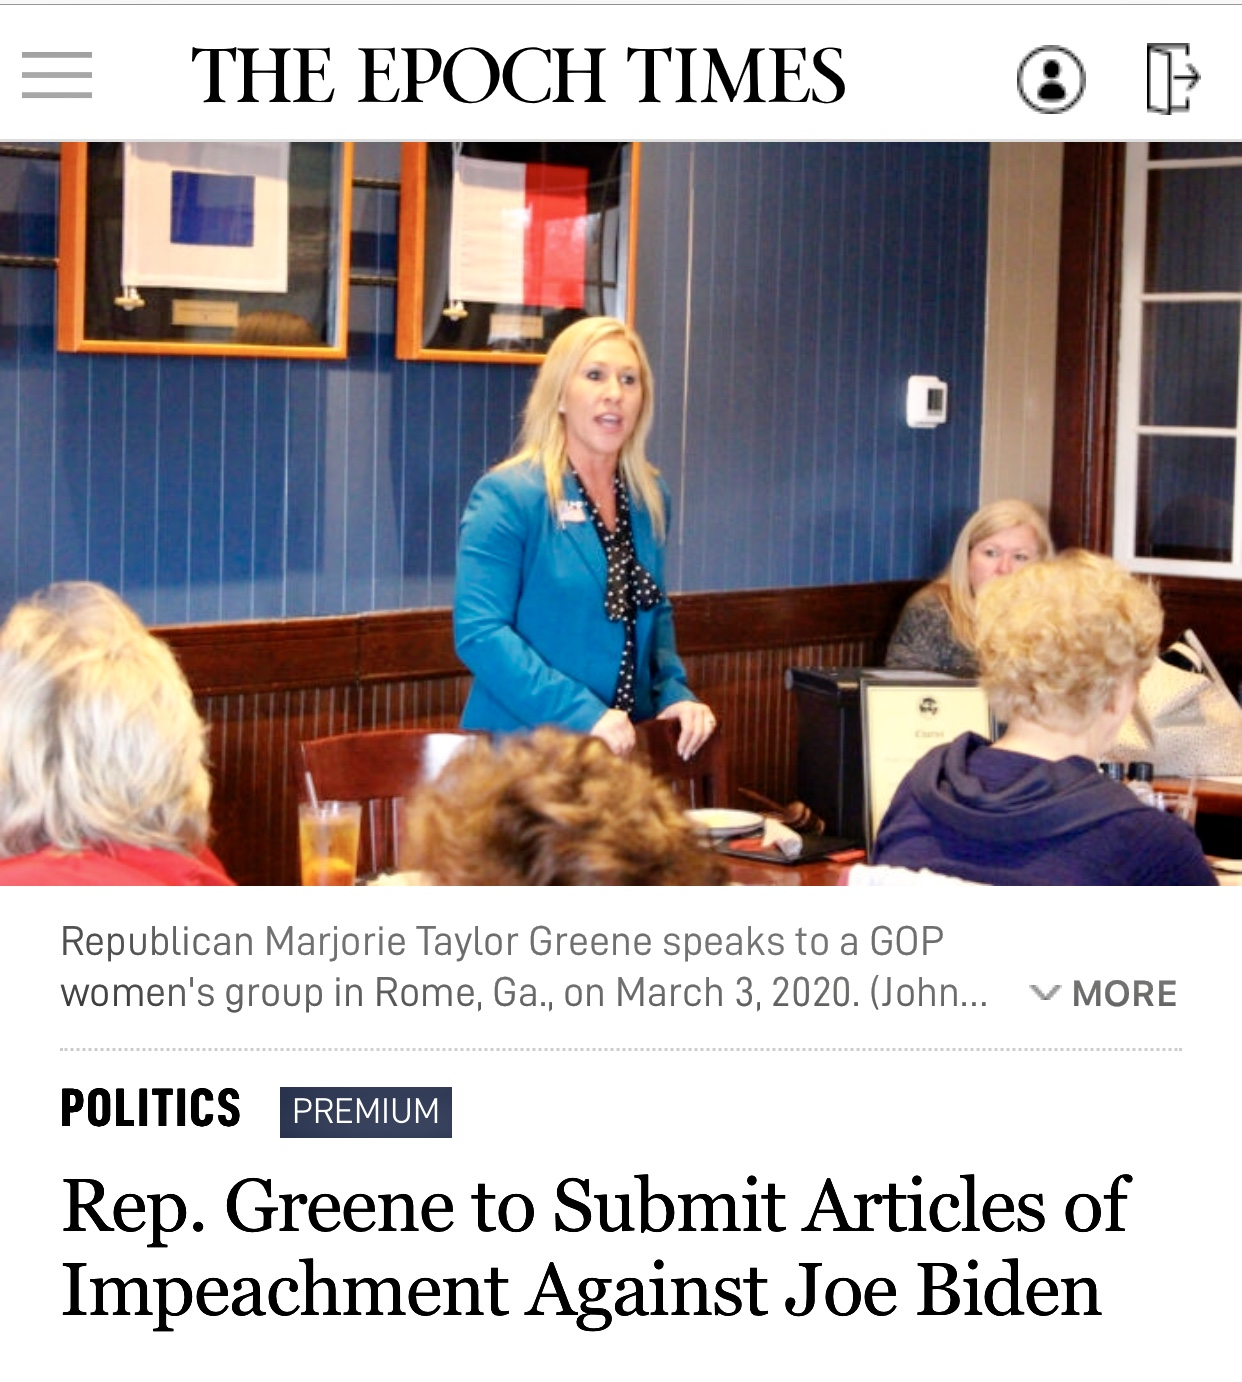 Rep. Greene to Submit Articles of Impeachment Against Joe Biden